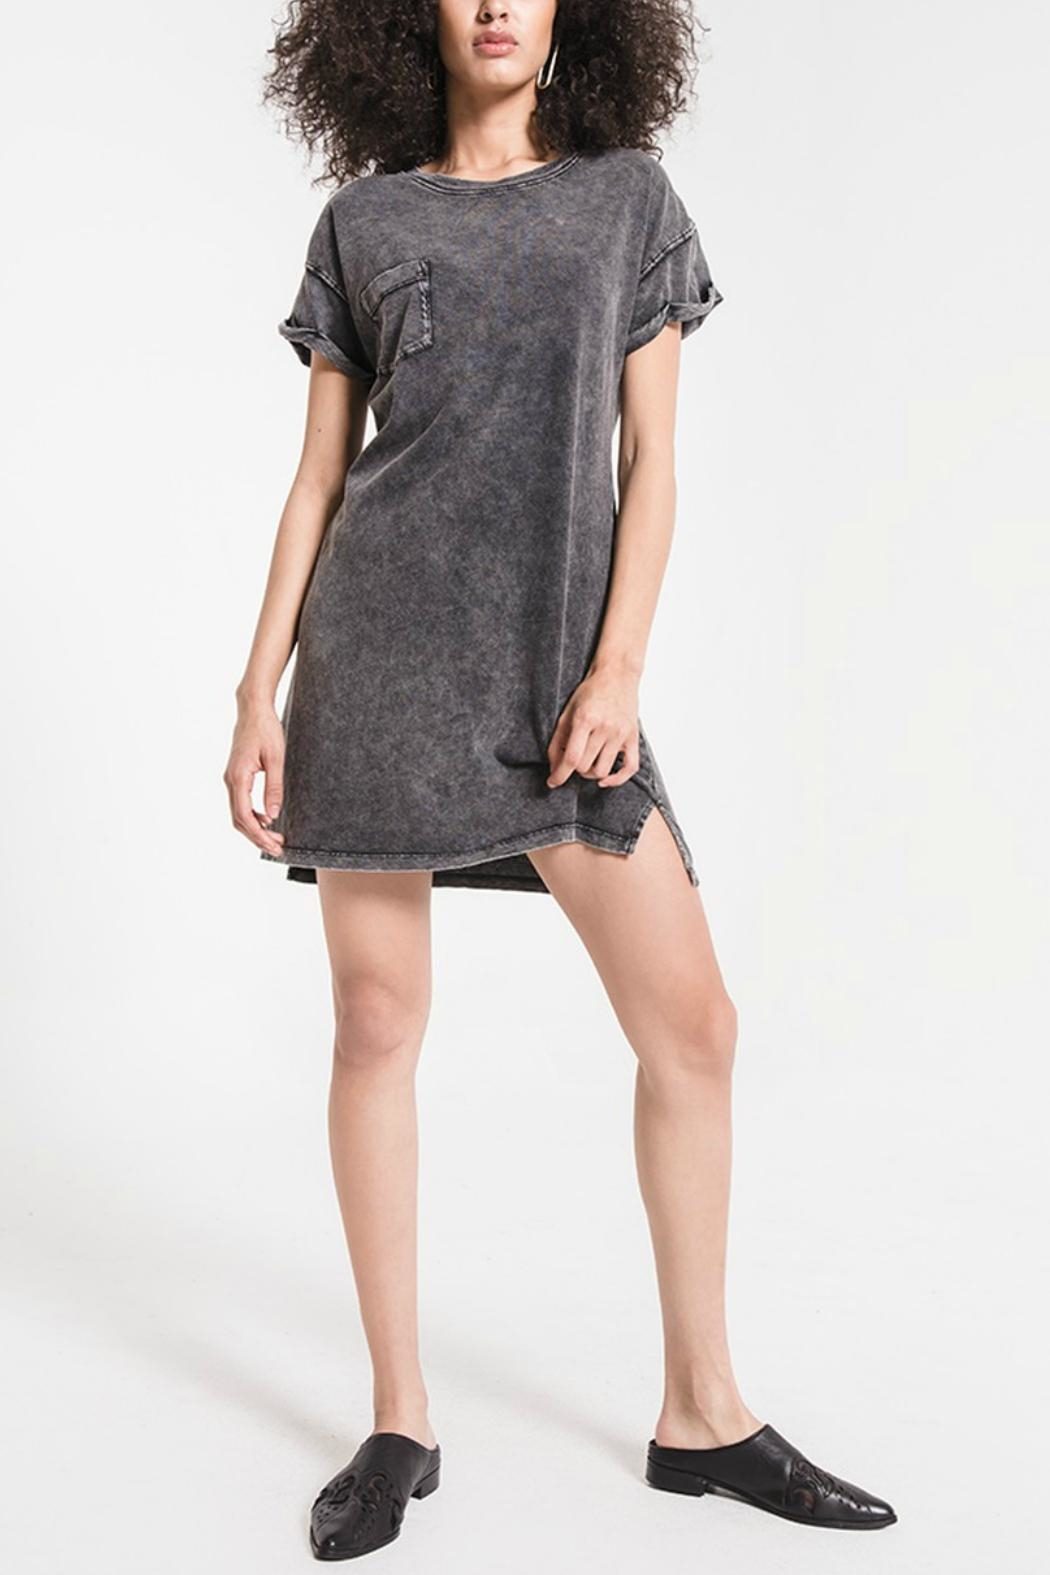 z supply Washed Cotton Dress - Main Image